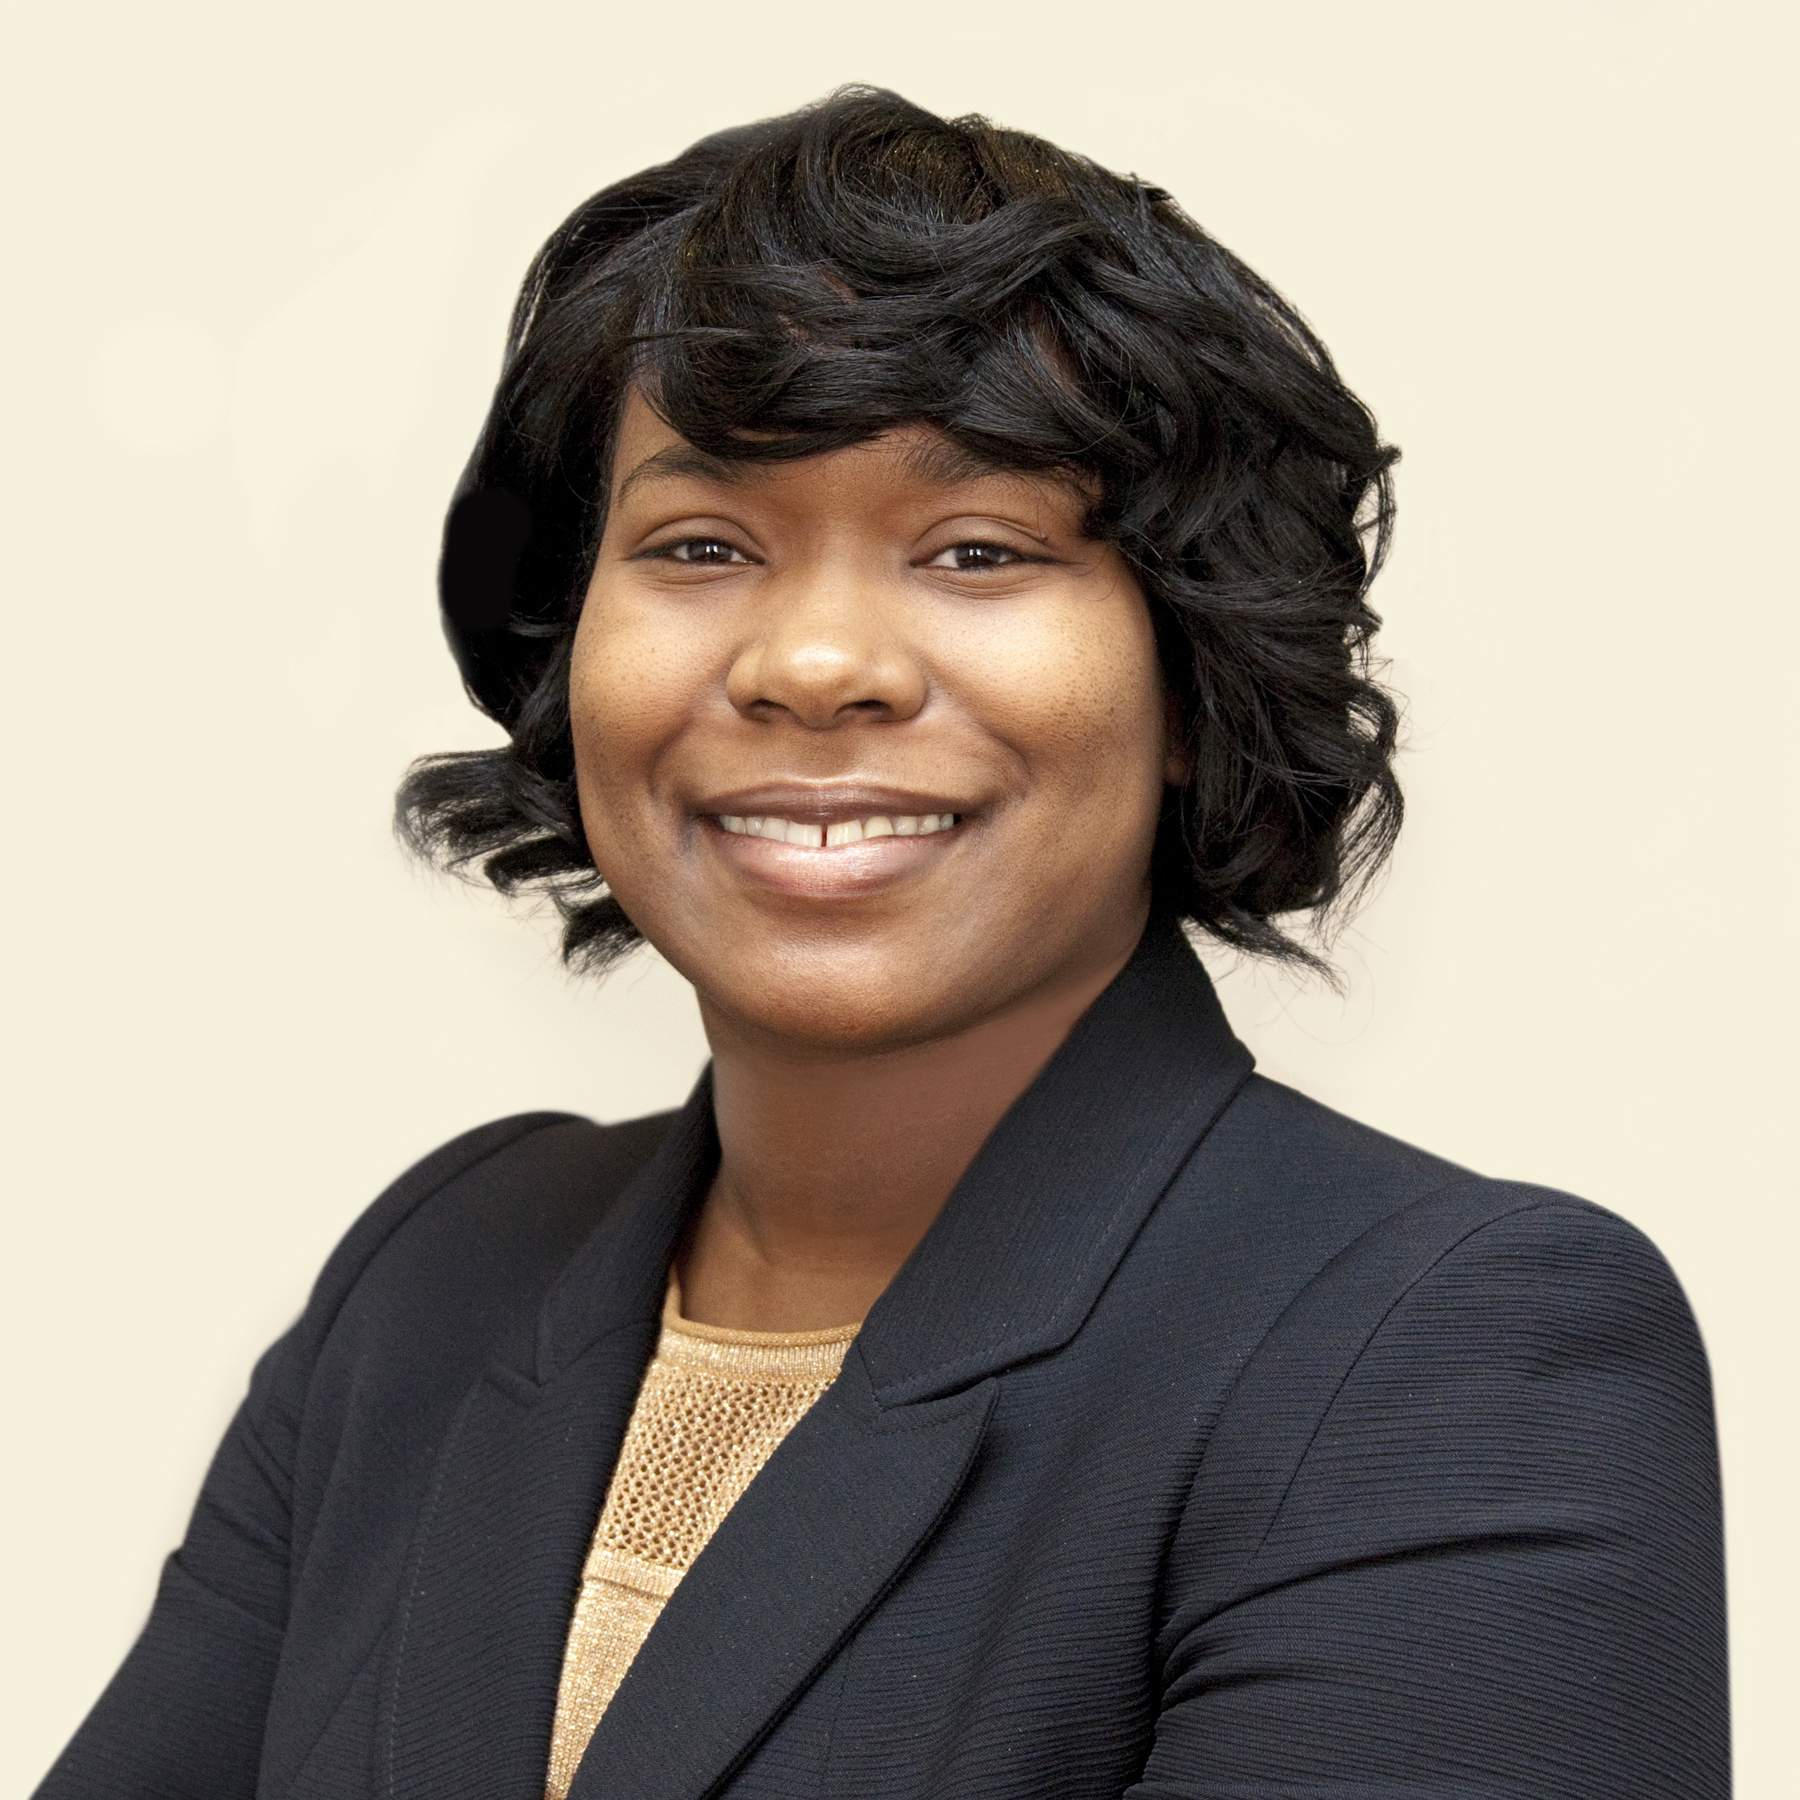 Vice president for community and government affairs, Thomas Edison State University